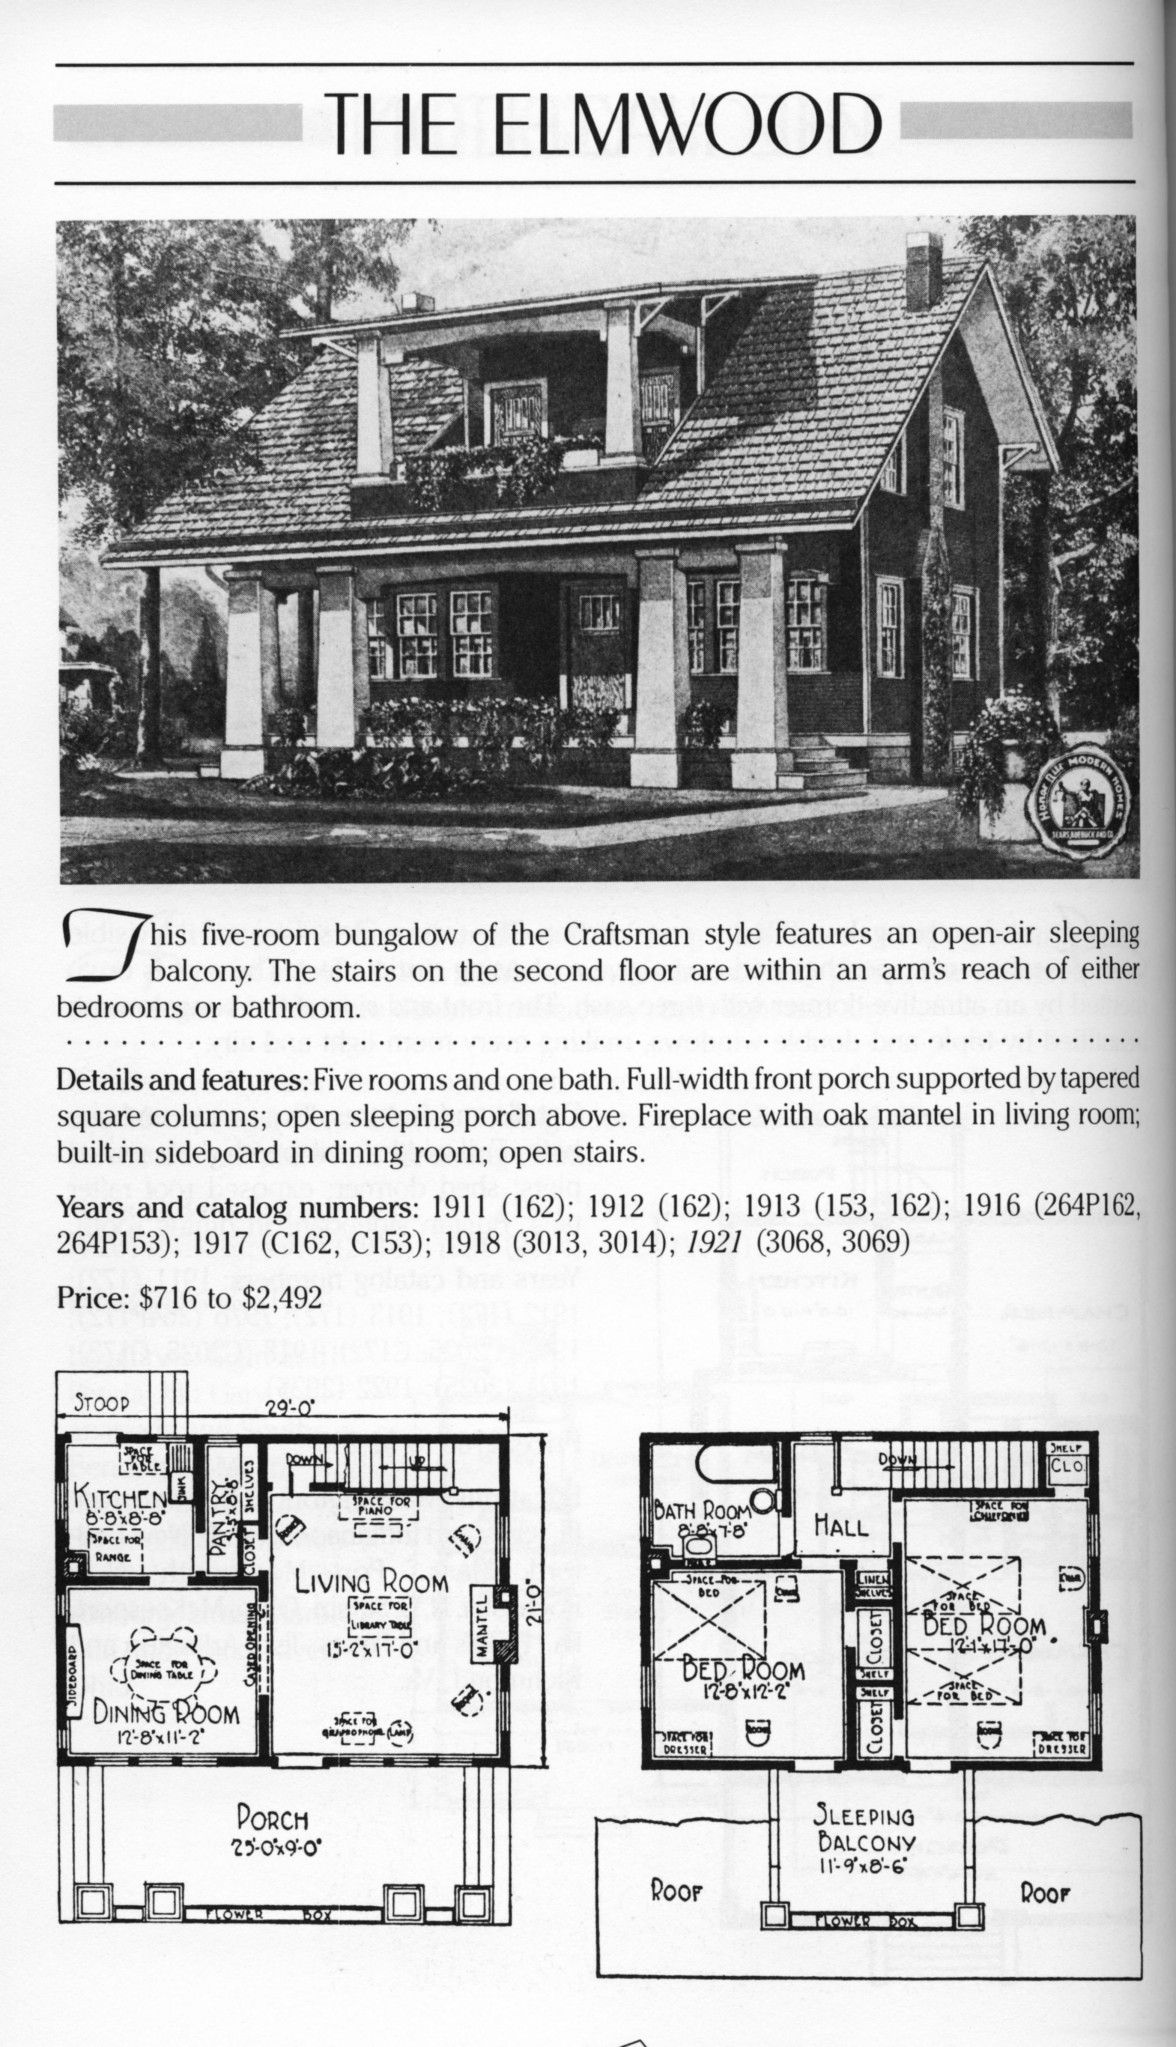 Pin by RG on House Plans Pinterest Vintage house plans House